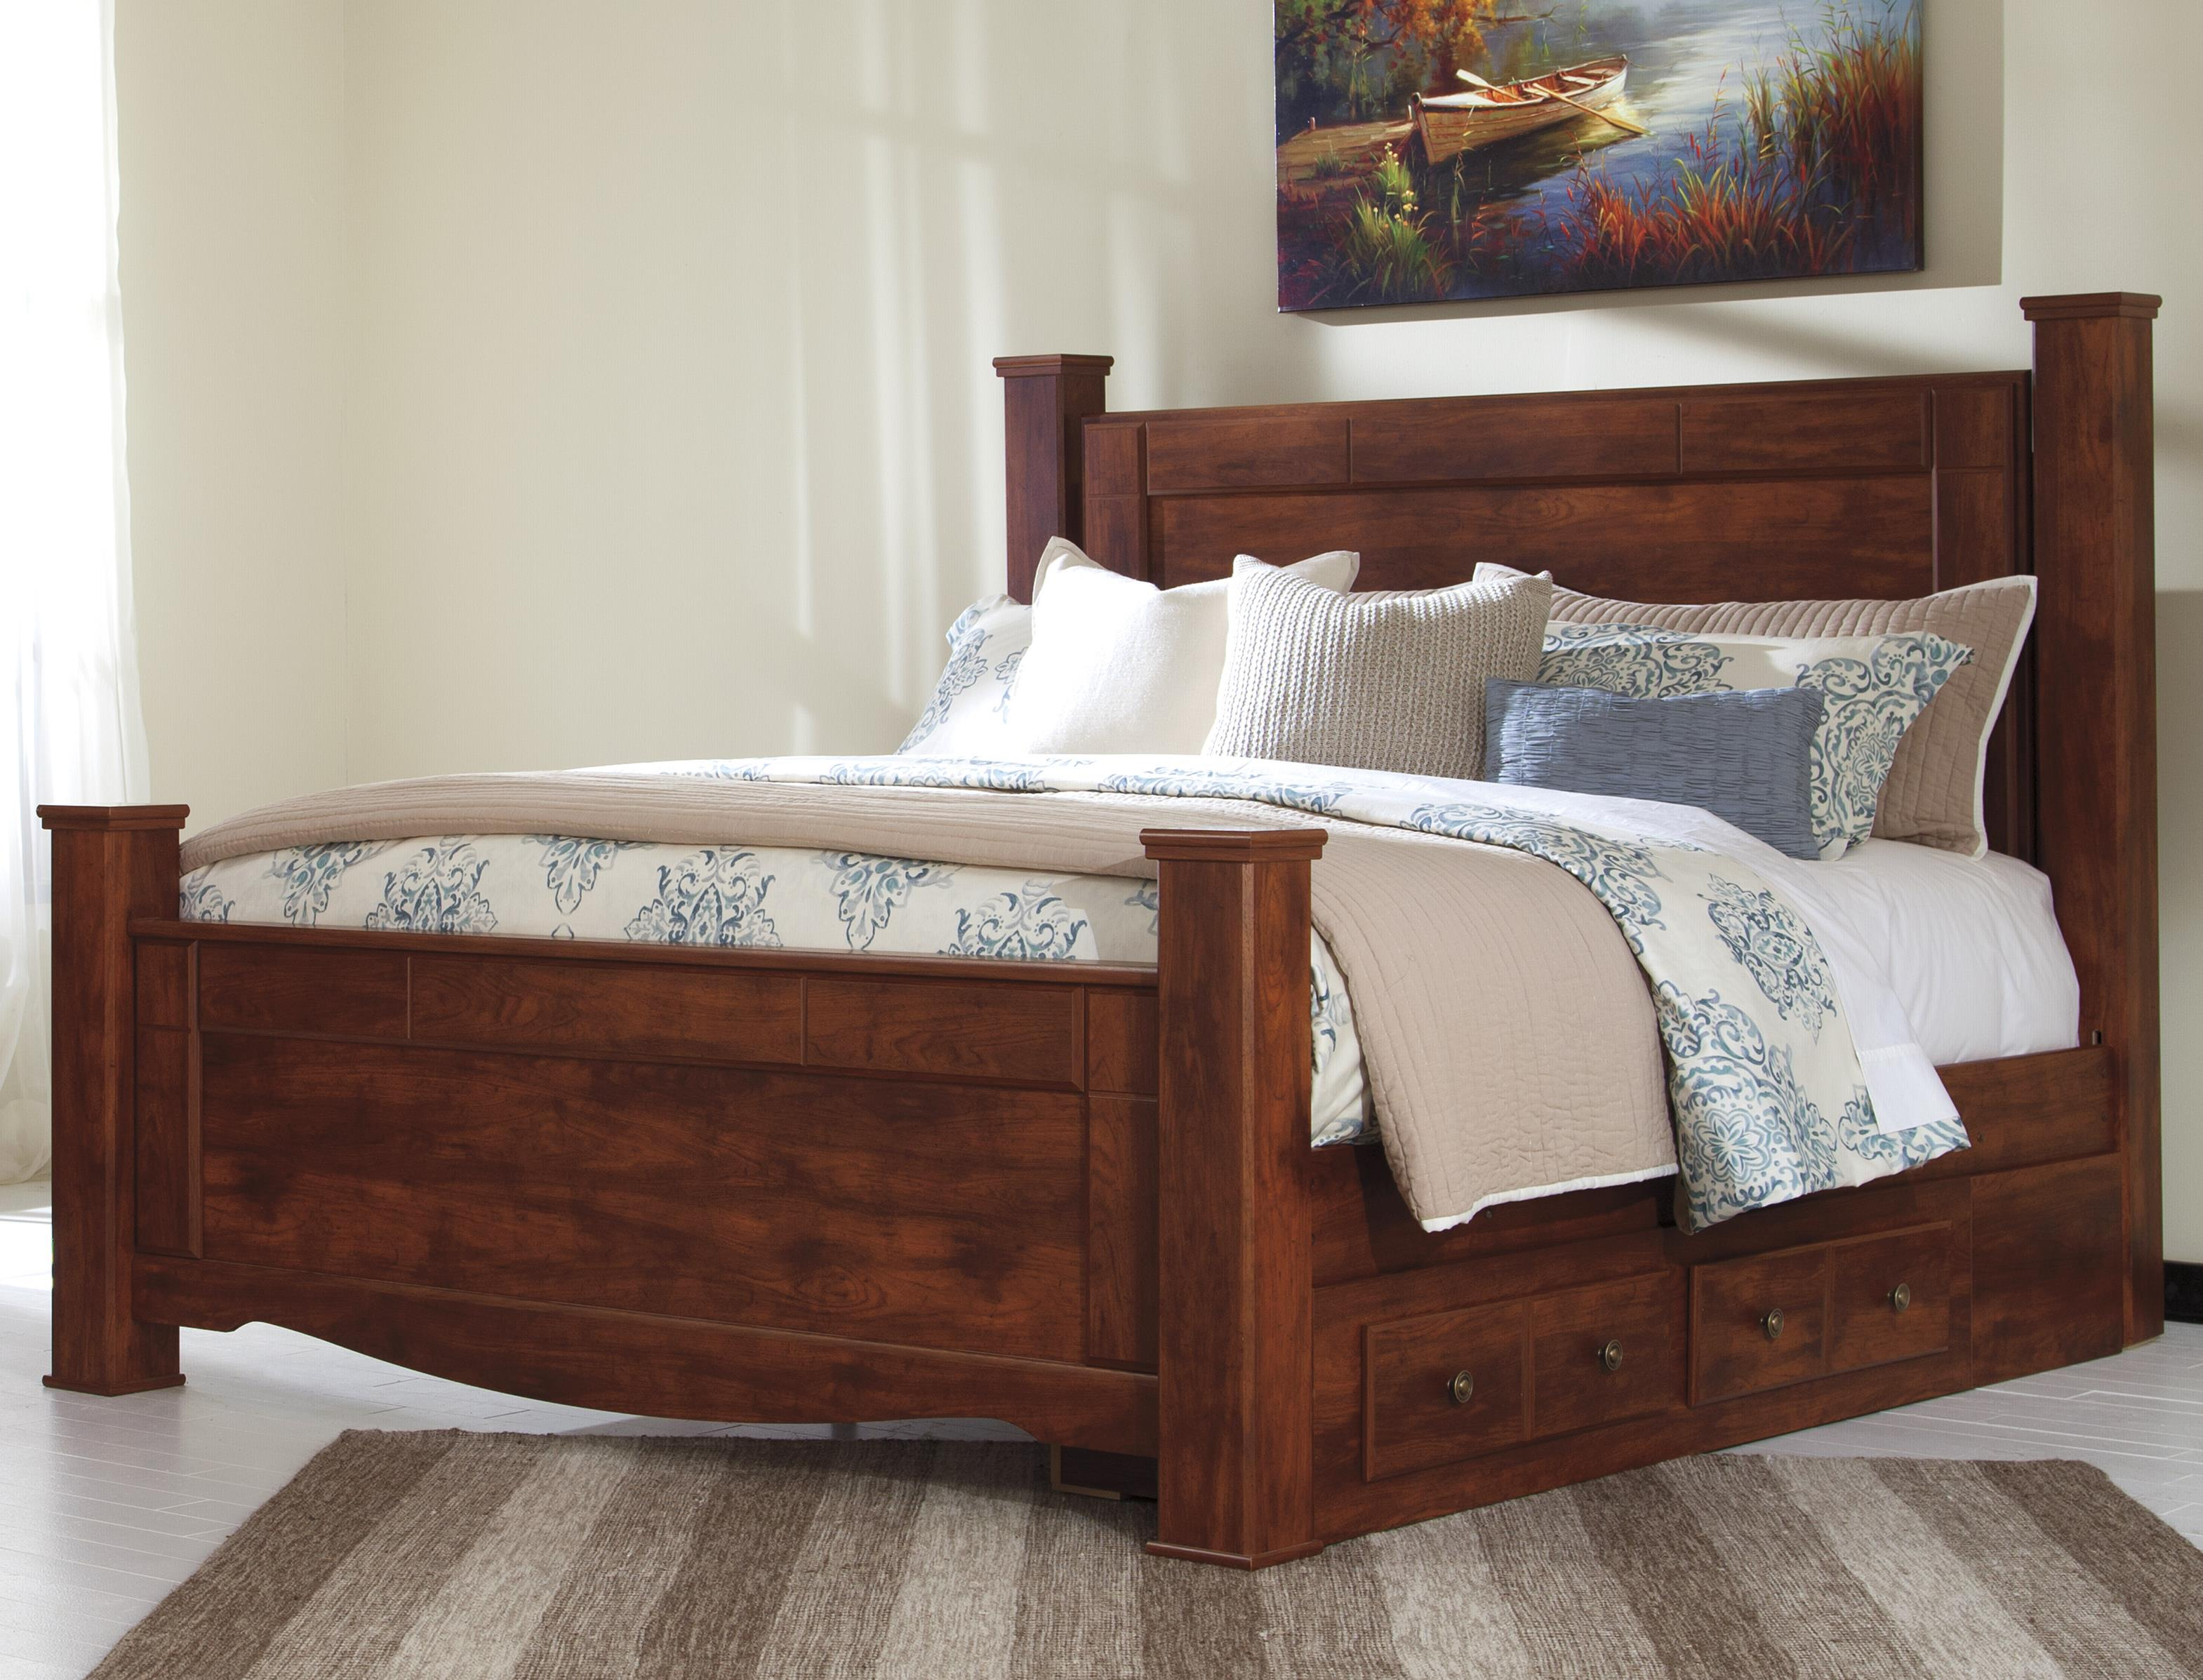 Signature Design by Ashley Brittberg King Poster Bed with Underbed Storage - Item Number: B265-68+66+61+50+99